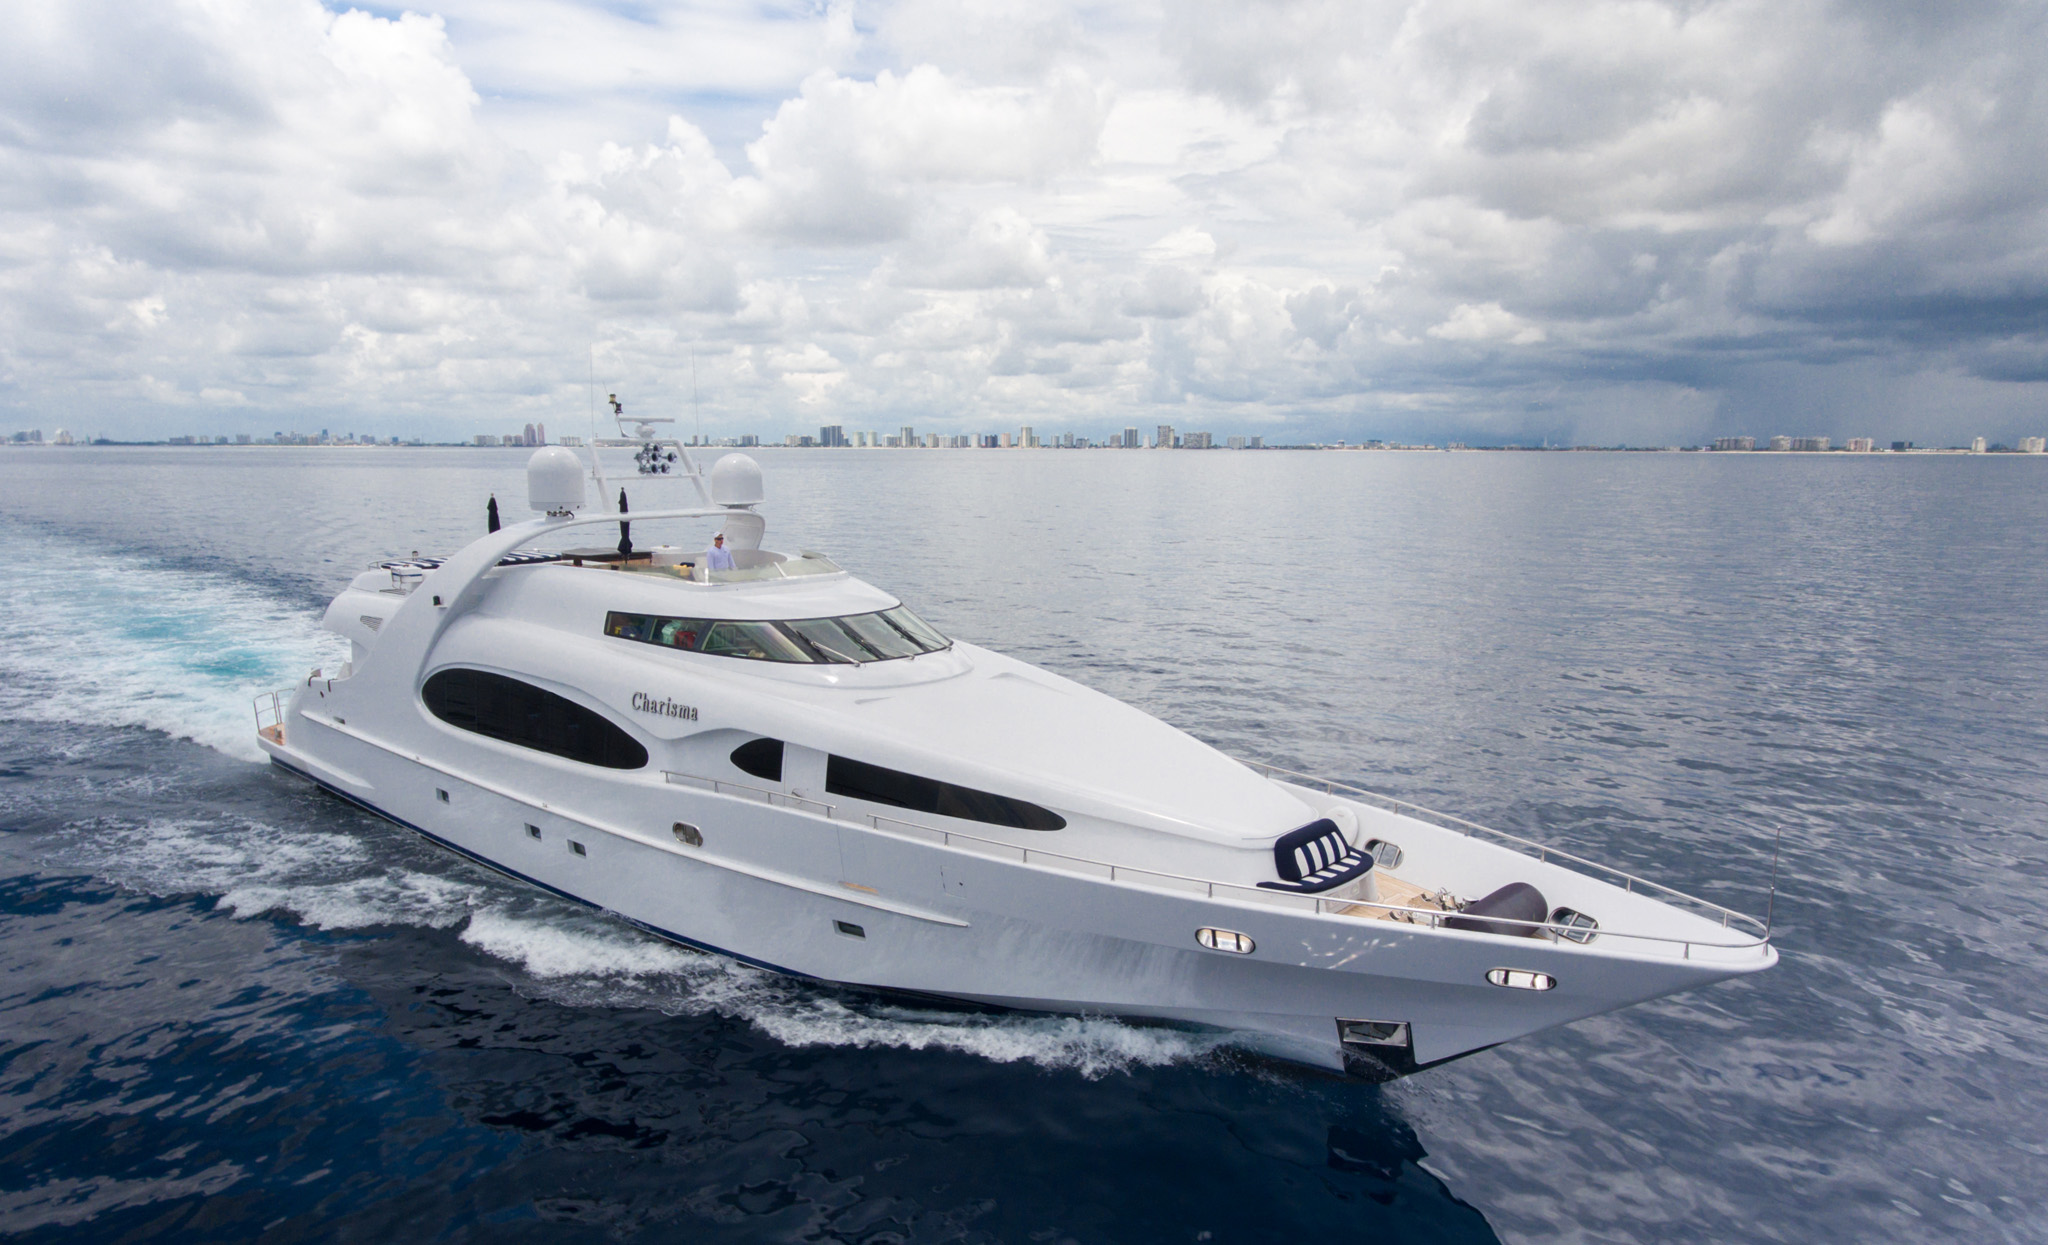 CHARISMA specs with detailed specification and builder summary